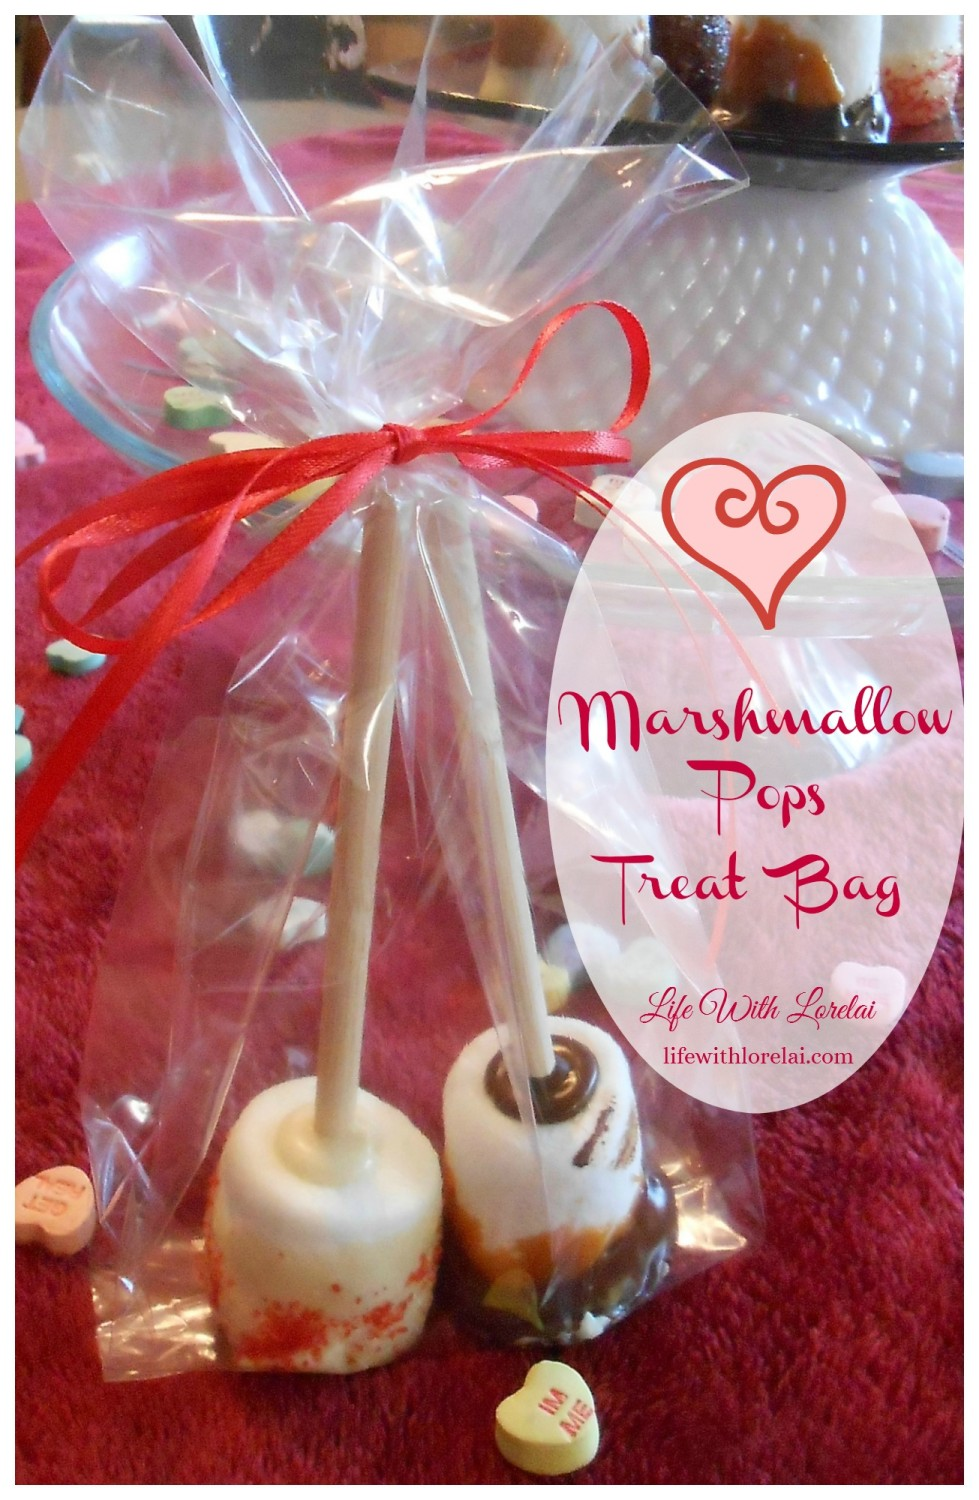 Marshmallow Pops Treat Bag - Life With Lorelai